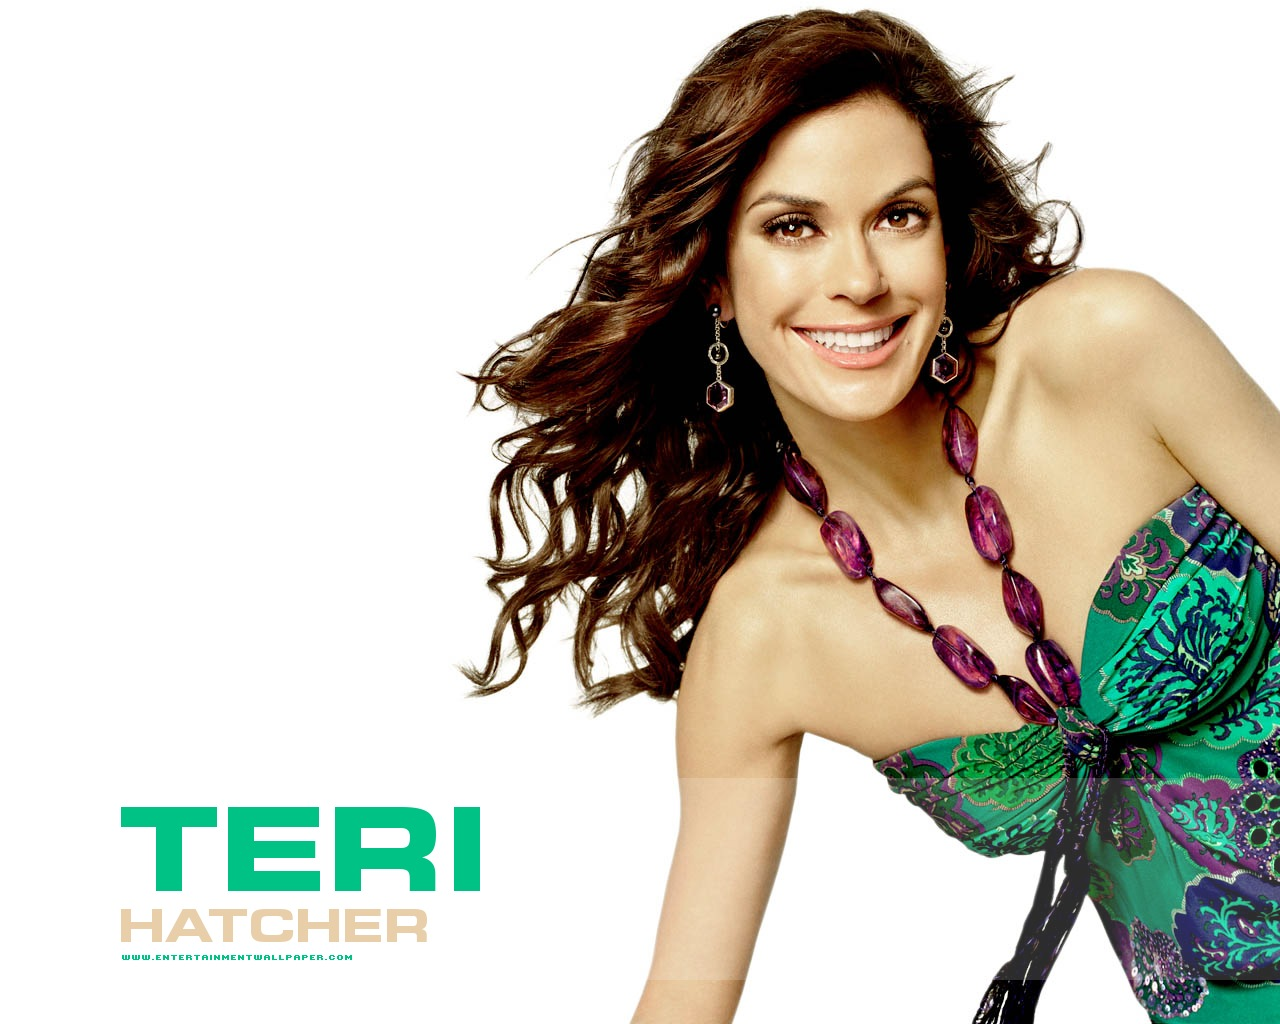 Teri hatcher in the cool surface 3